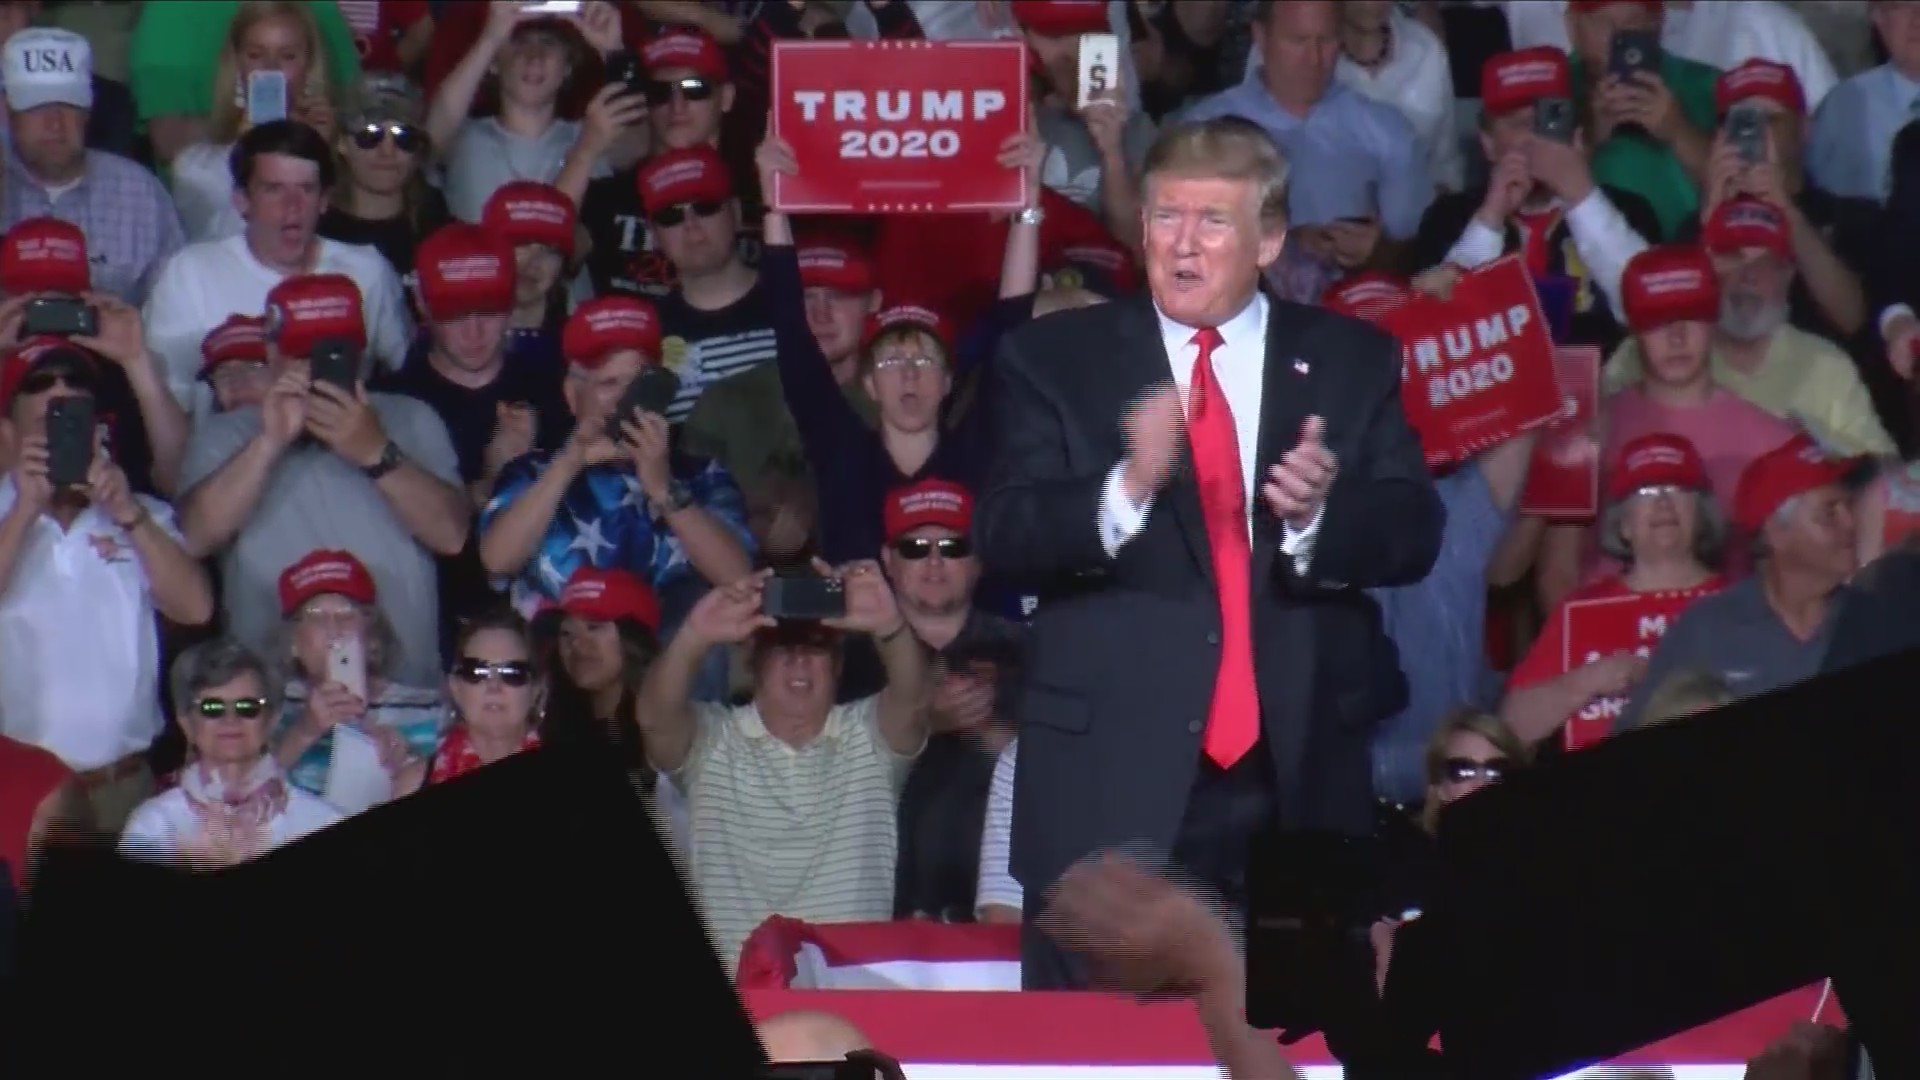 Supporter say President Trump's rally in Montoursville was best one yet